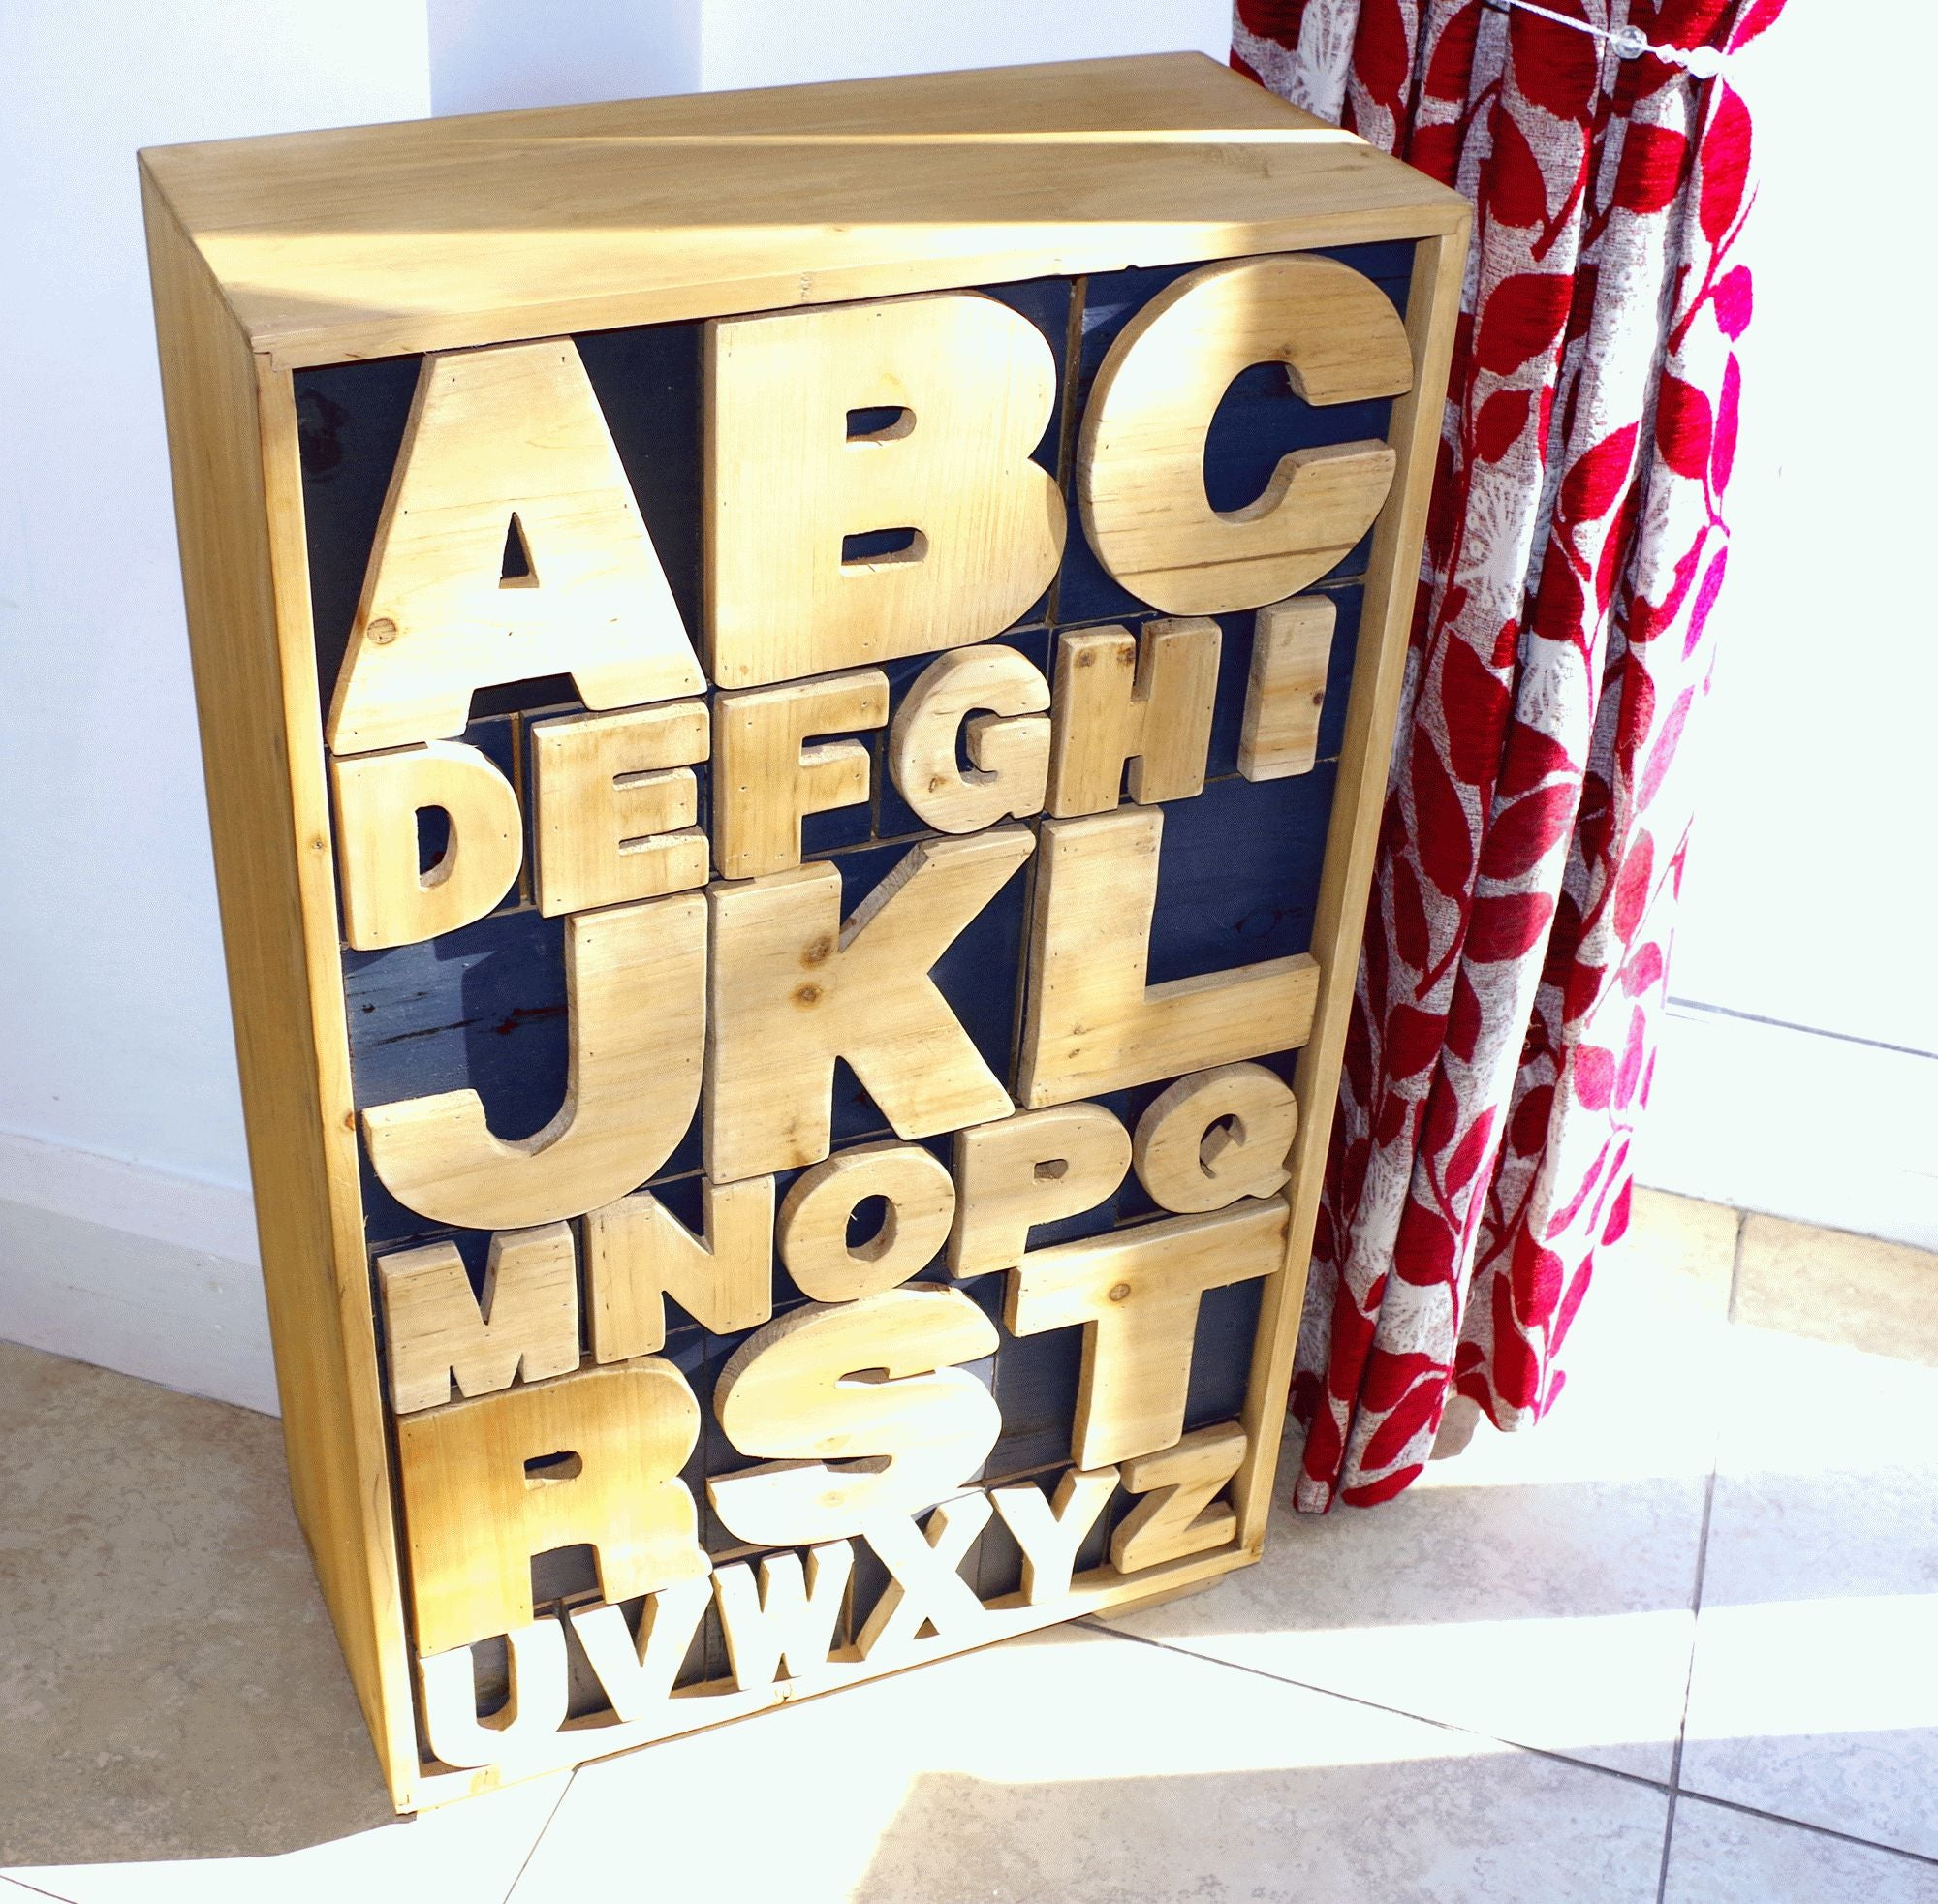 Alphabet Cabinet 54 x 26 x 89cm, Furniture by Low Cost Gifts